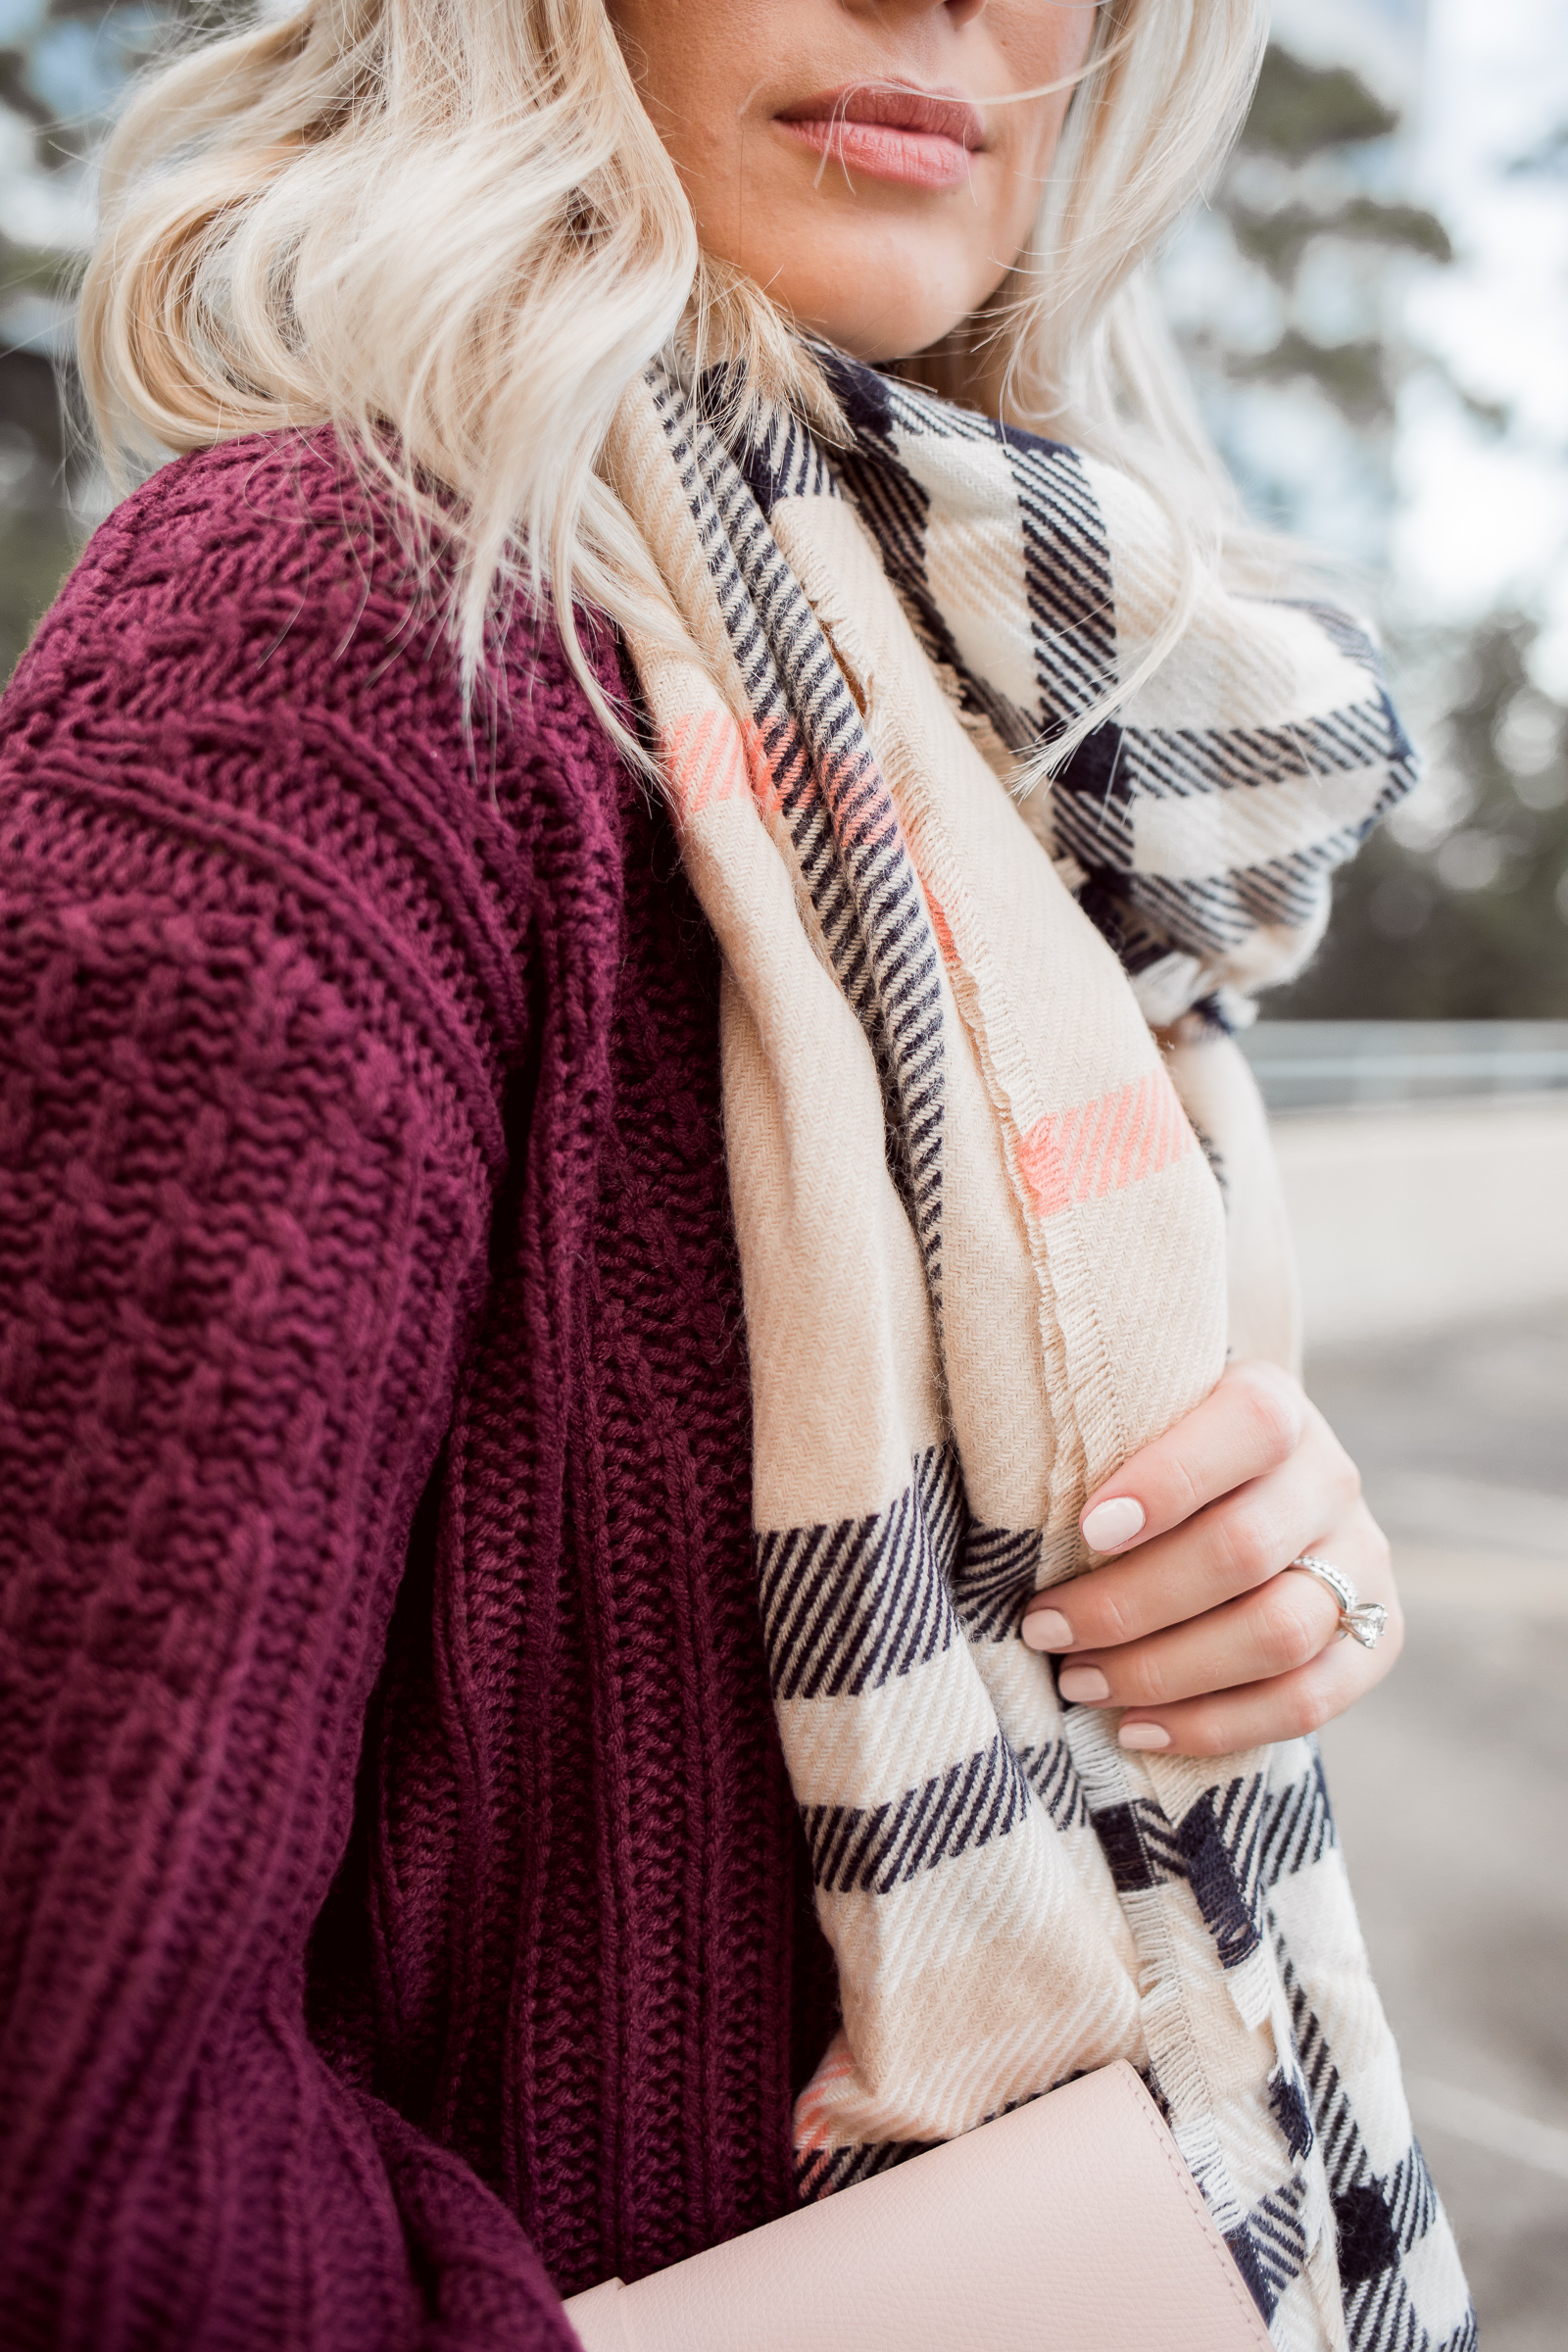 Houston fashion blogger Uptown with Elly brown wears a plaid blanket scarf for fall